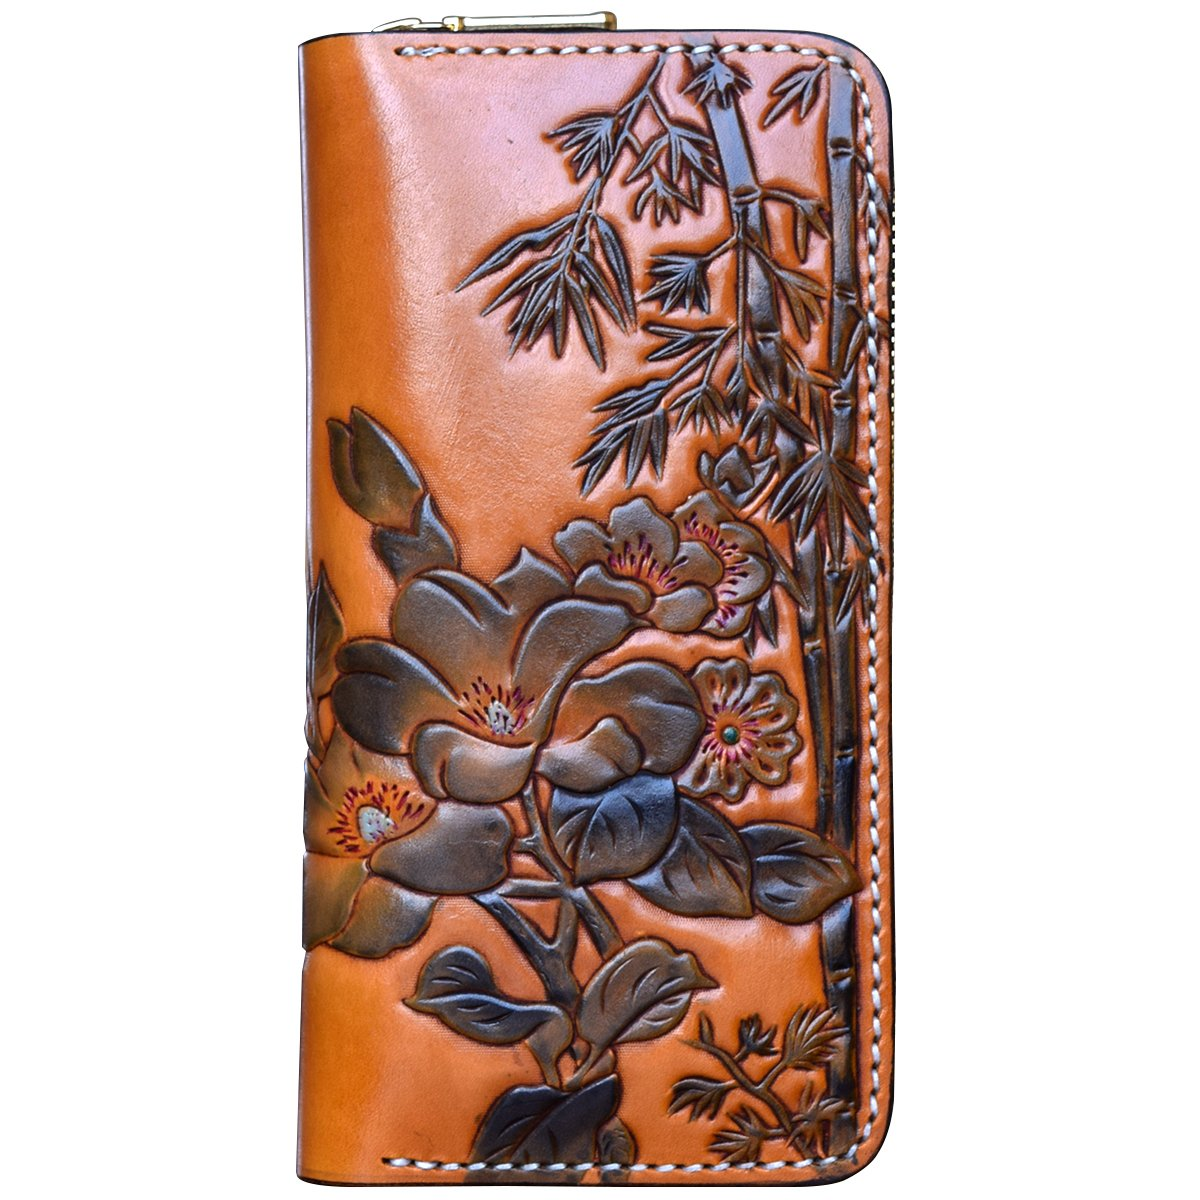 OLG.YAT Vegetable tanned leather Retro Genuine Leather Men's Wallets 20HZPD by OLG.YAT